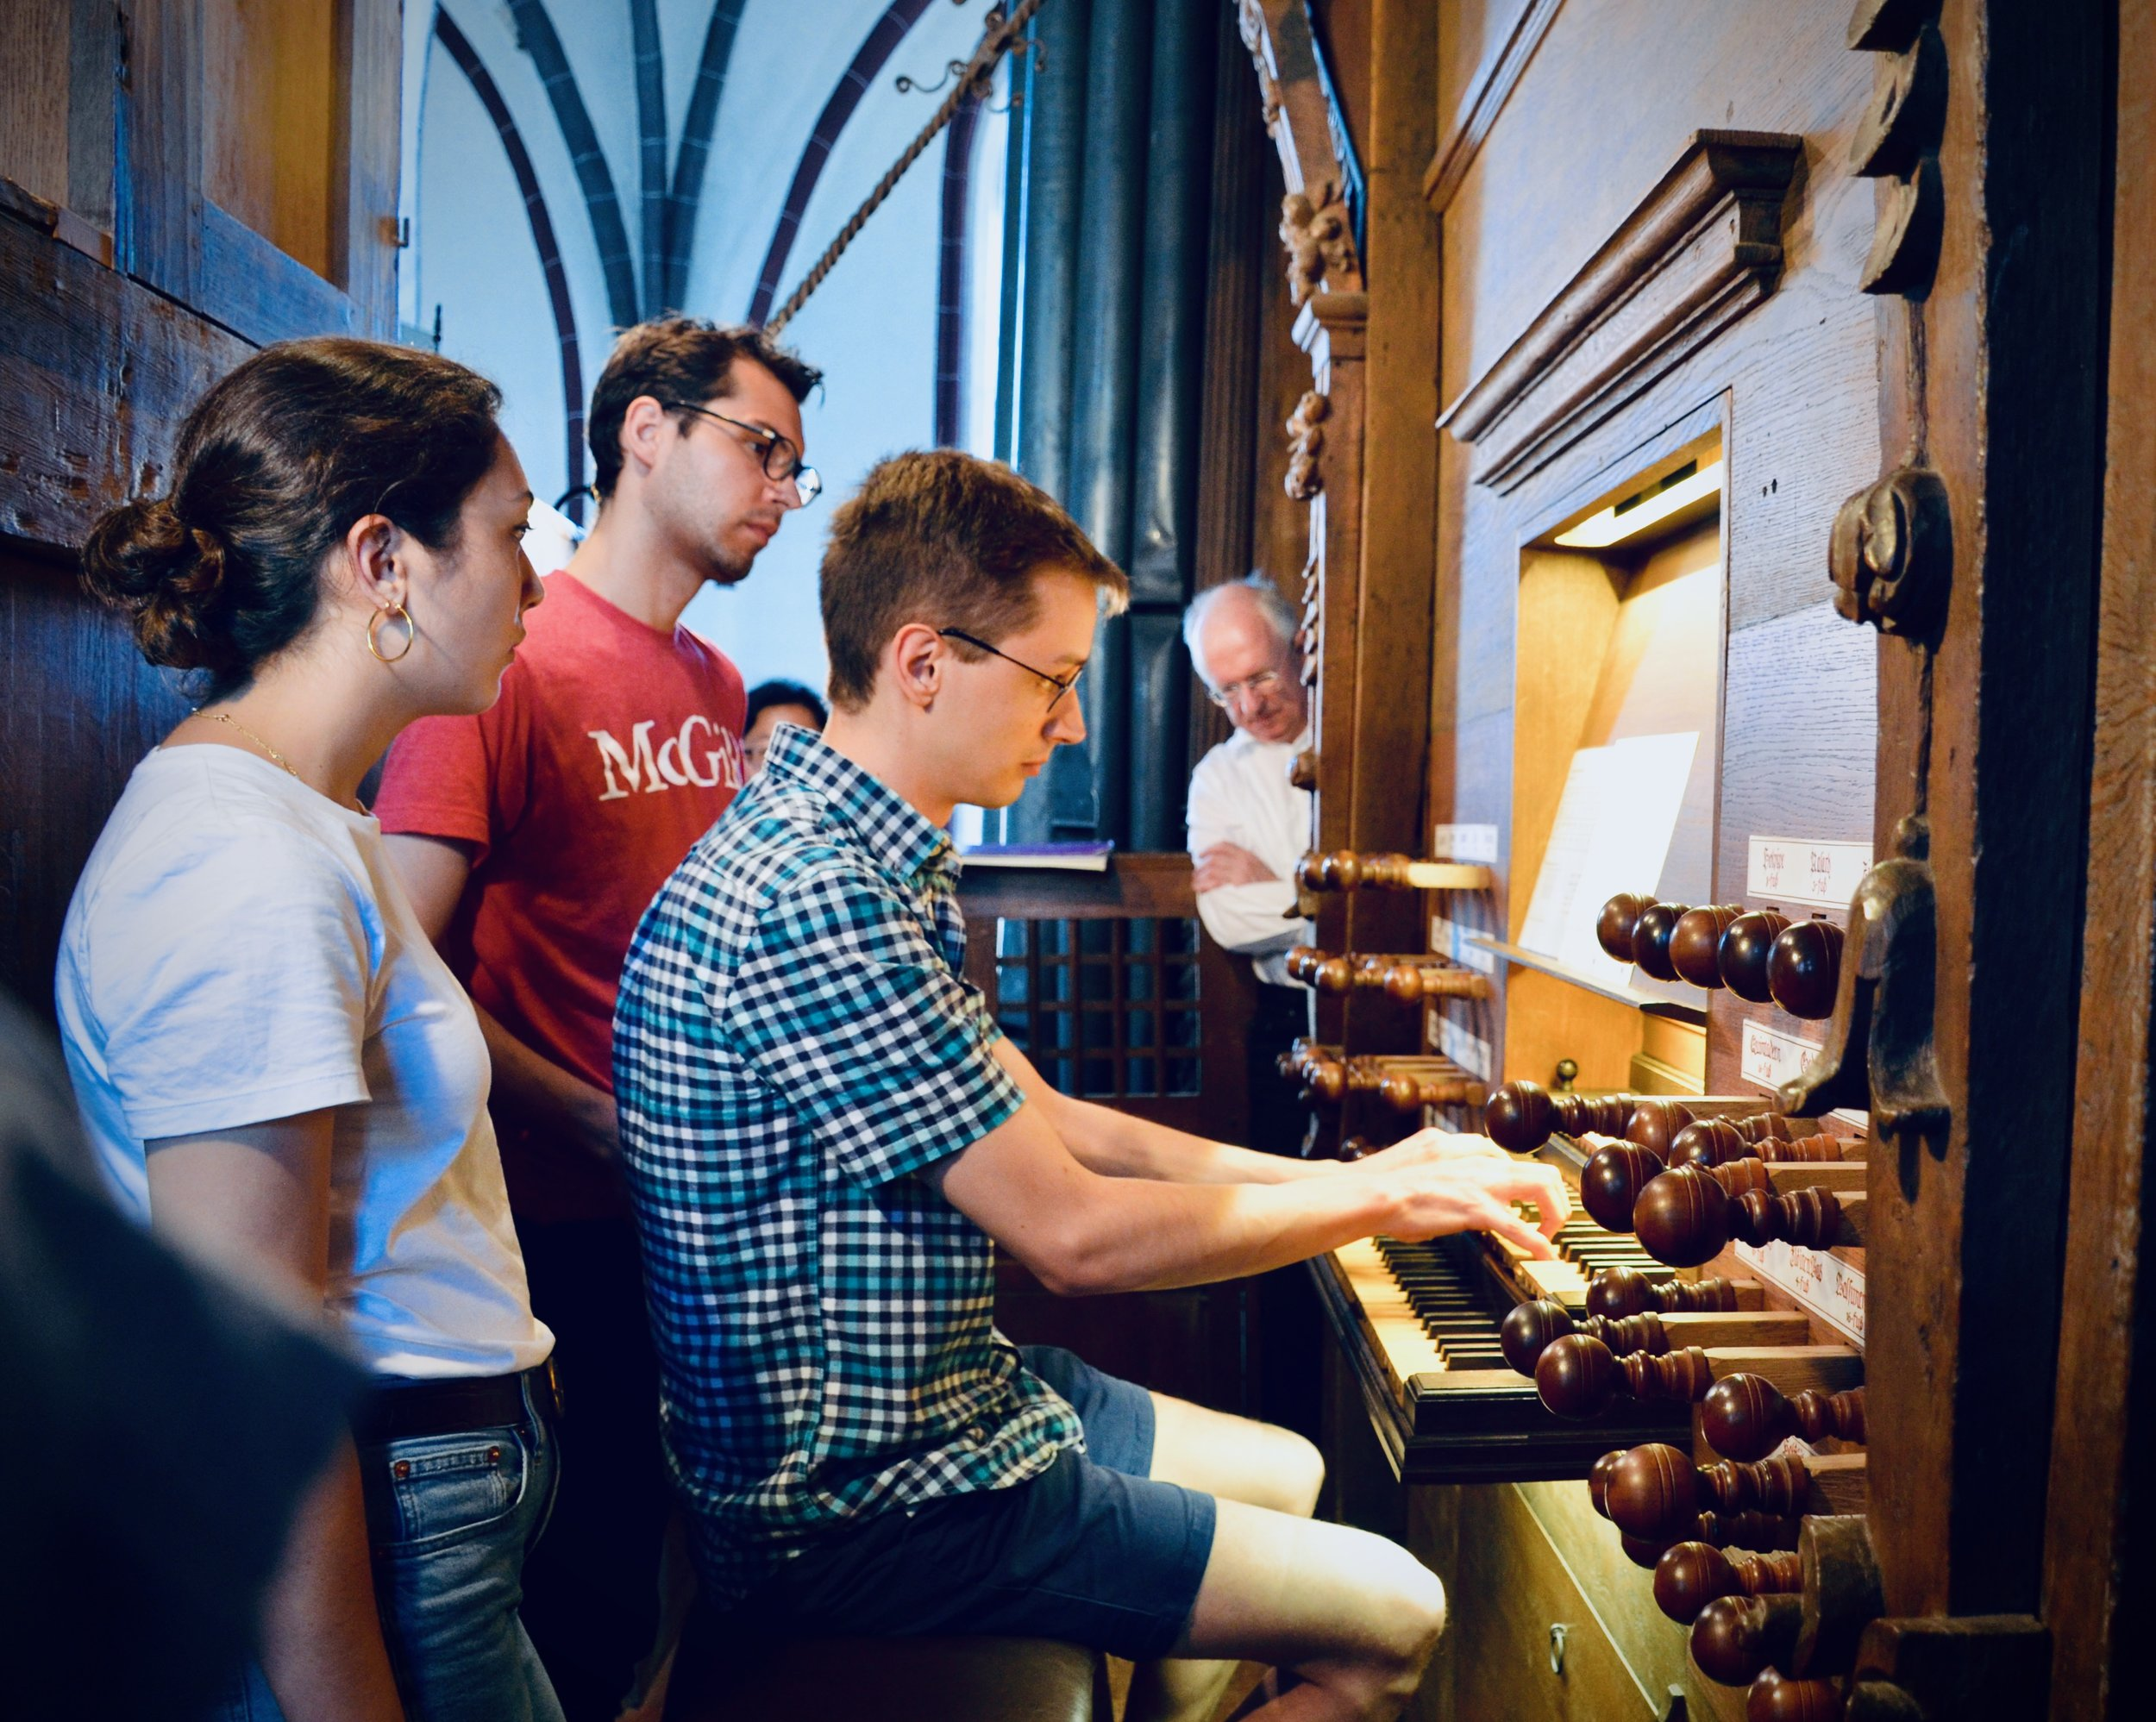 Alex Ross plays the 1624 Scherer organ in Tangermünde, as organist Christoph Lehmann looks on.